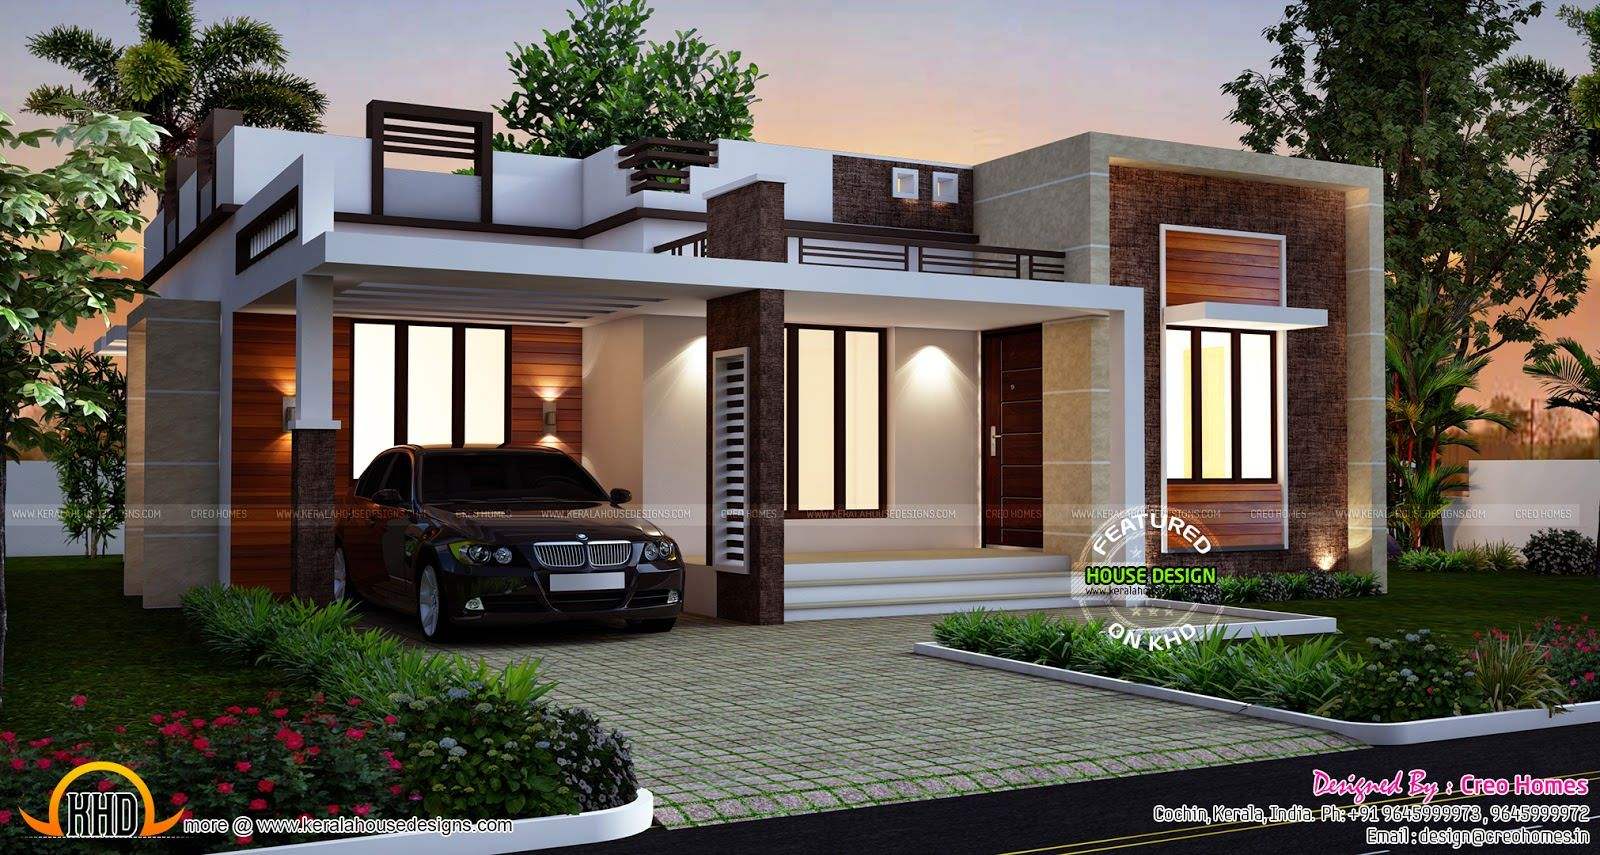 Designs homes design single story flat roof house plans for Best new home ideas